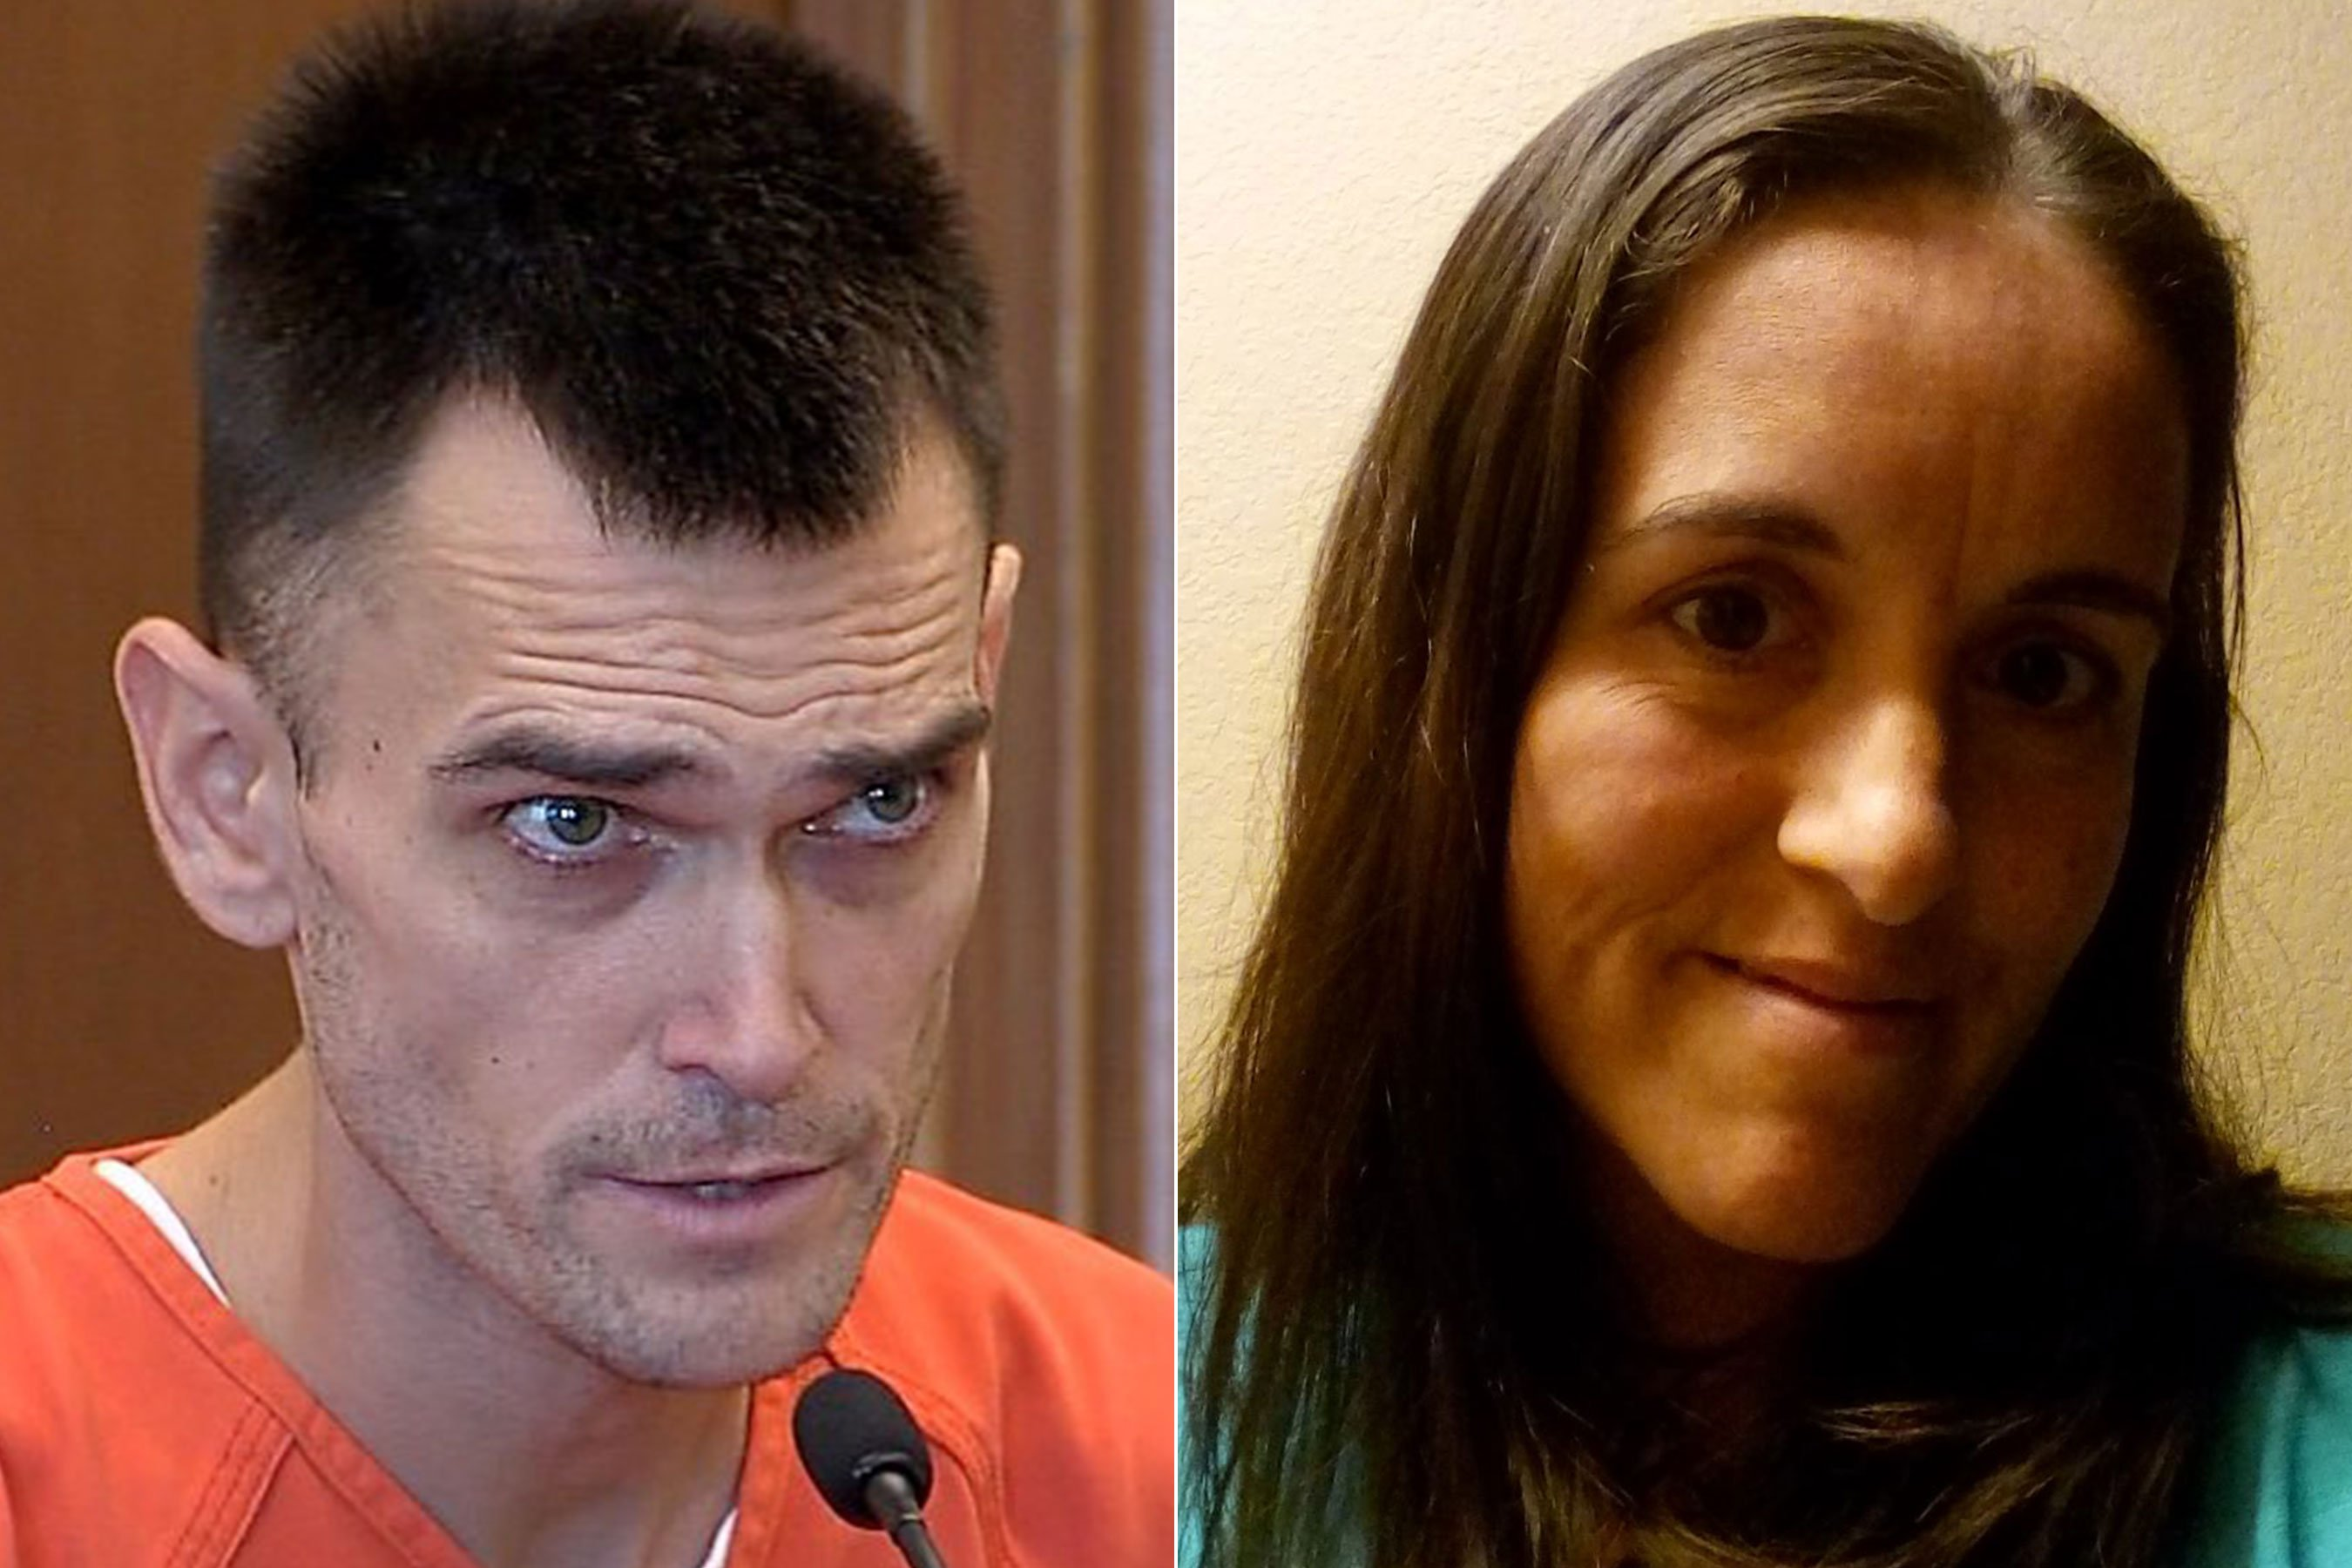 Man Admits Dismembering Wife's Body and Putting Remains in a Cooler: 'Something I Had to Do'